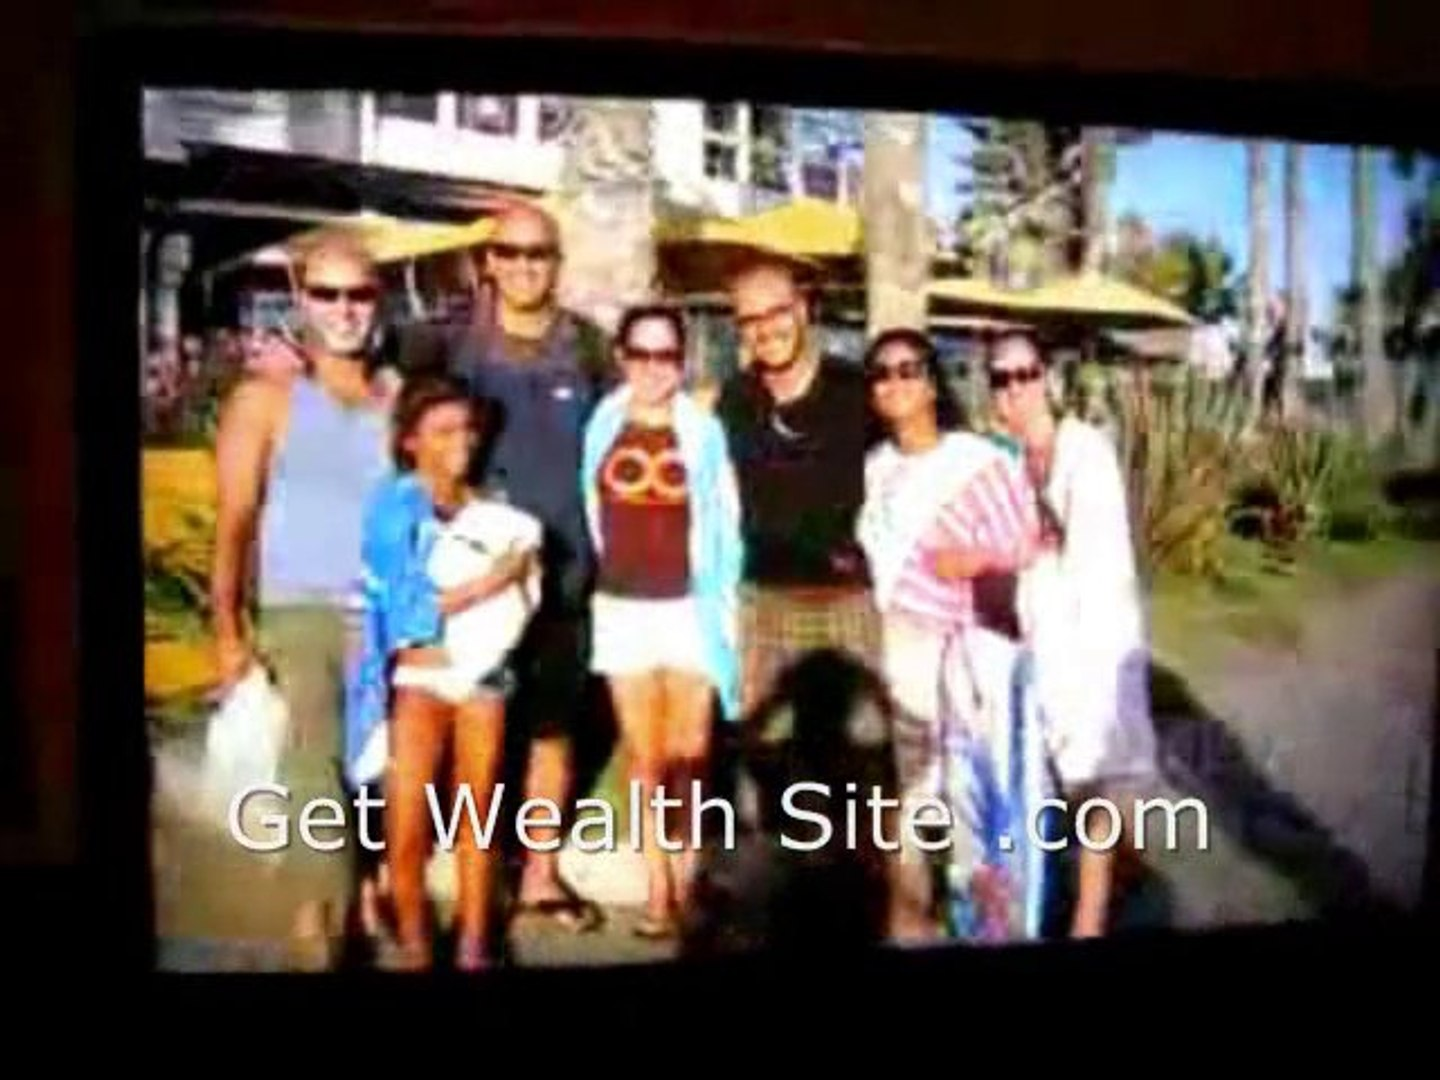 100% Legitimate - Home Based Business - Work From Home